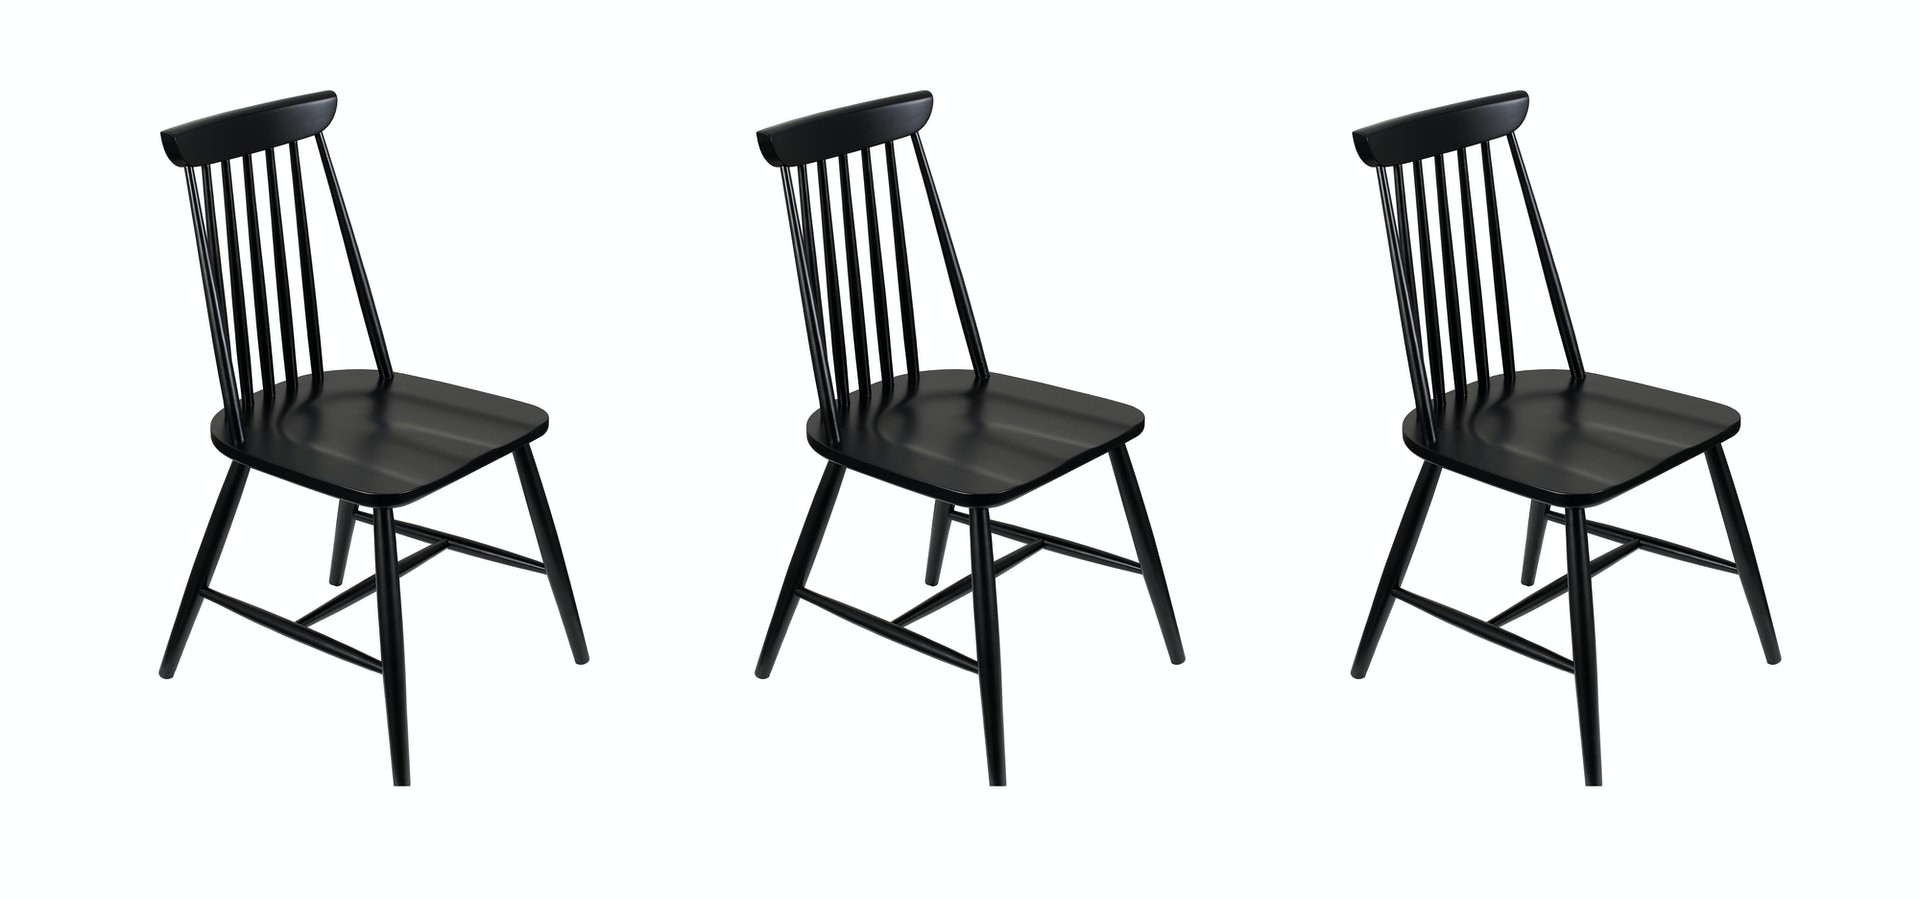 Chairs Stosa - Model Kendy 10094